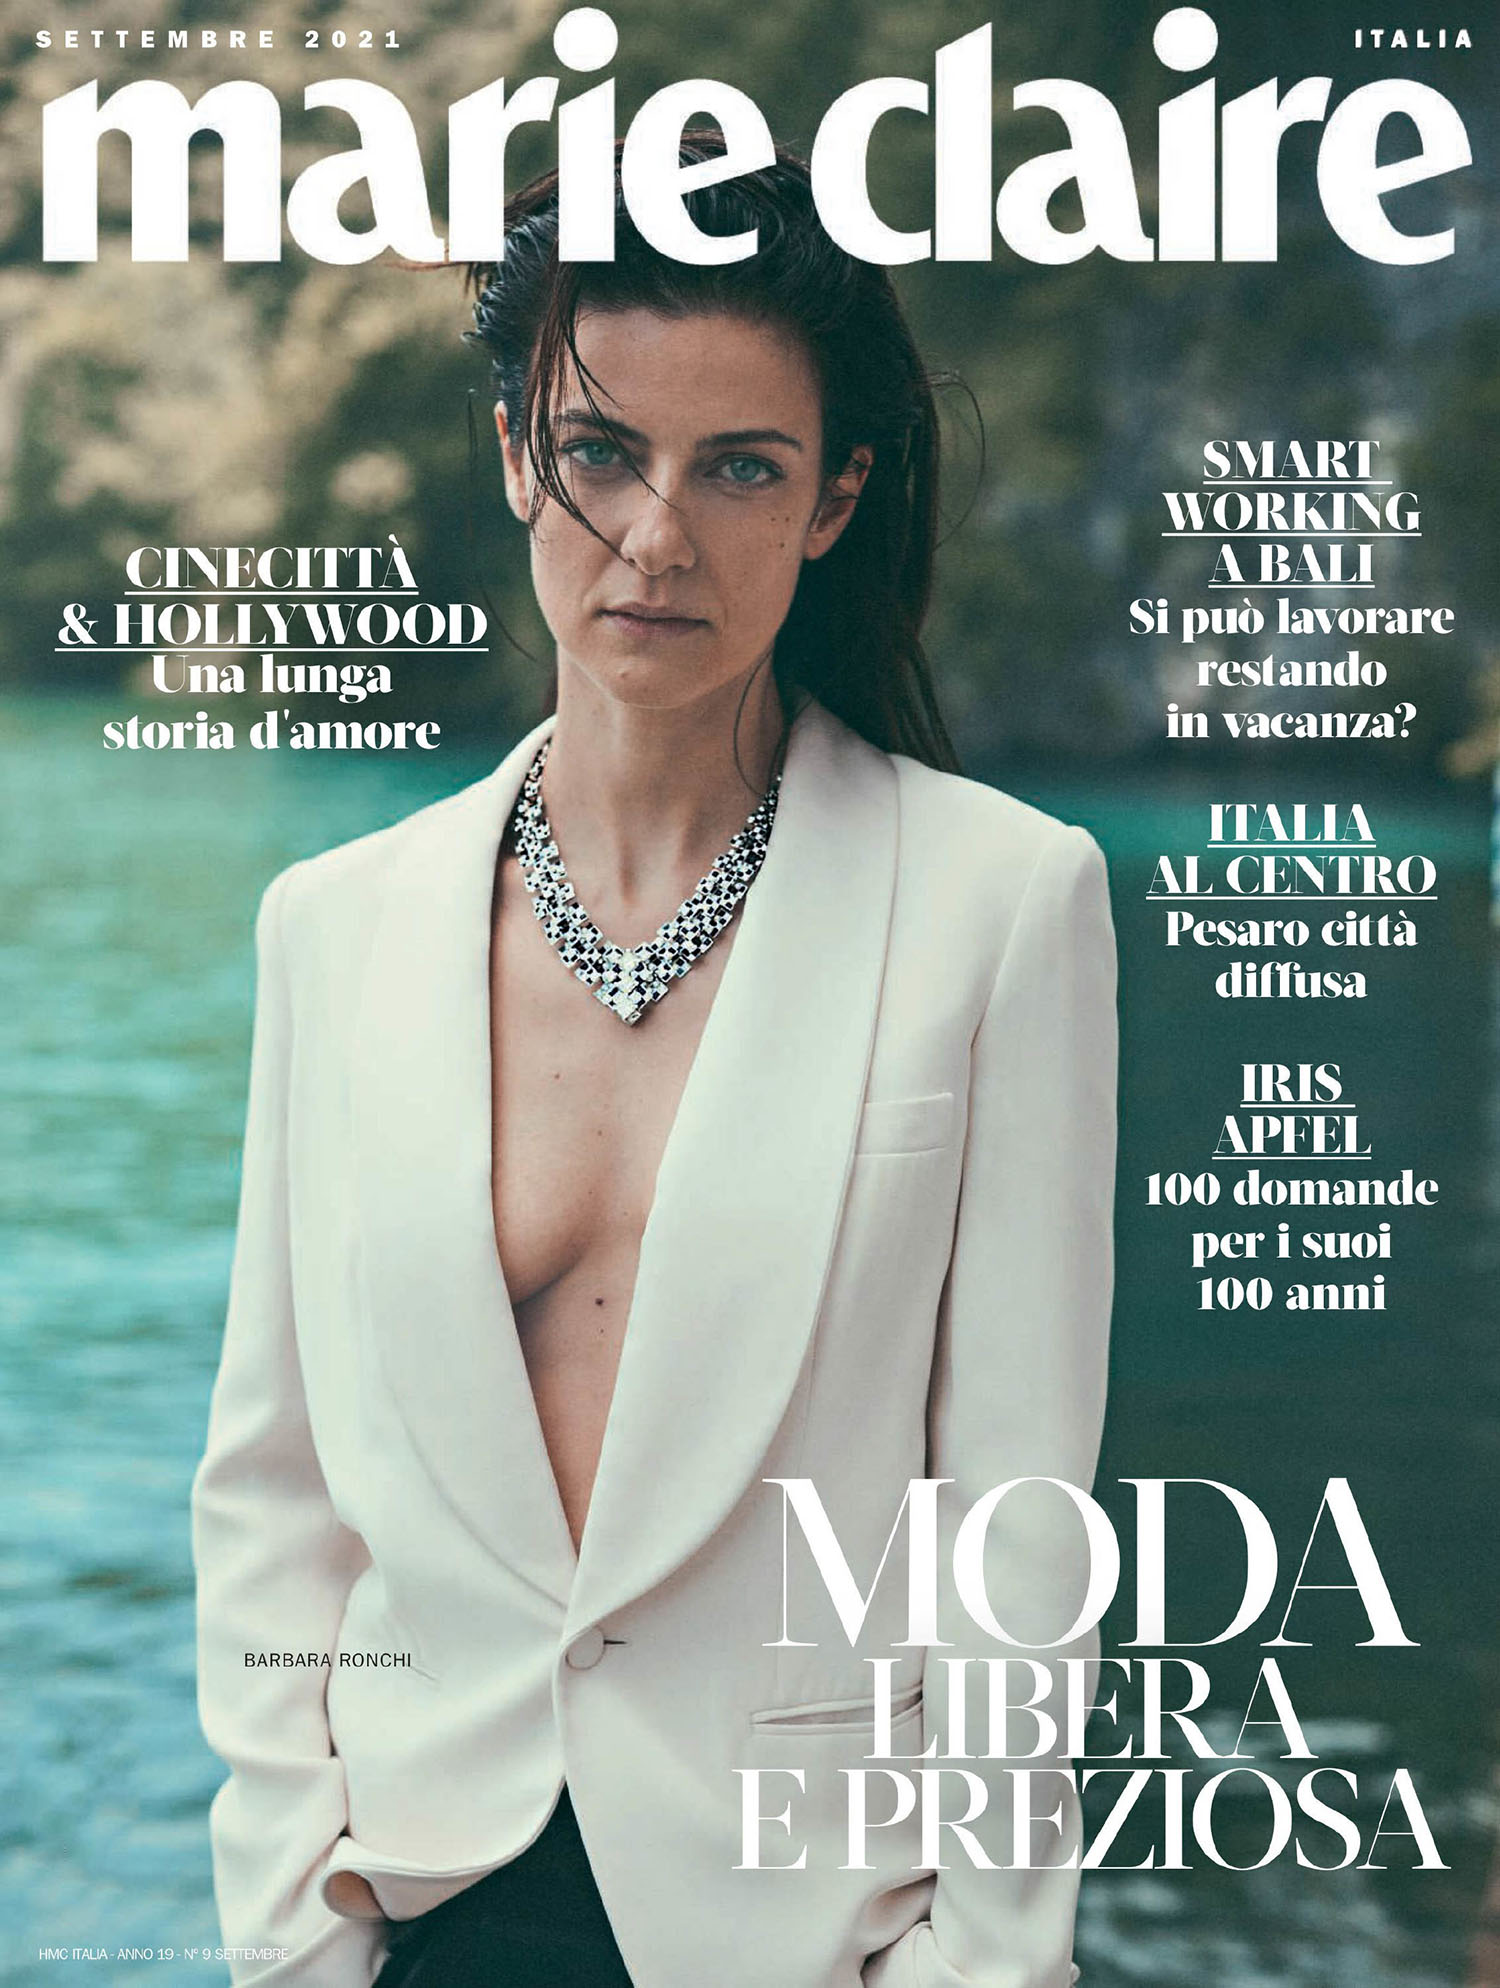 Barbara Ronchi covers Marie Claire Italia September 2021 by Stefano Galuzzi